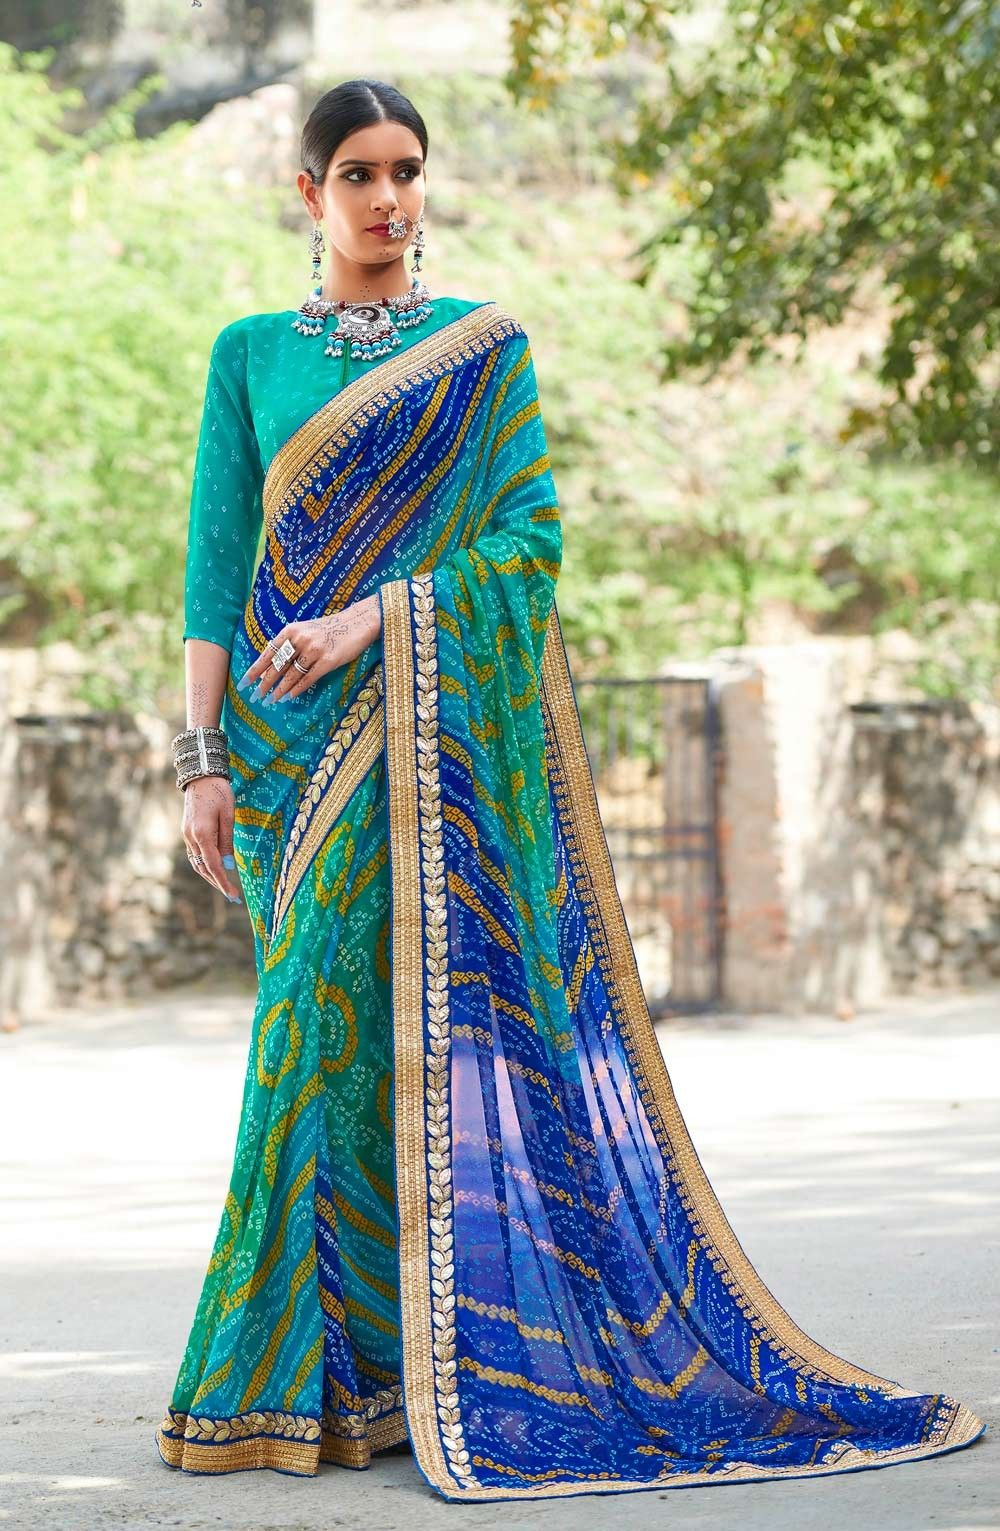 ad70226af6 Latest Green and Blue Gujarati Bandhani Saree with Golden Gota Lace Border